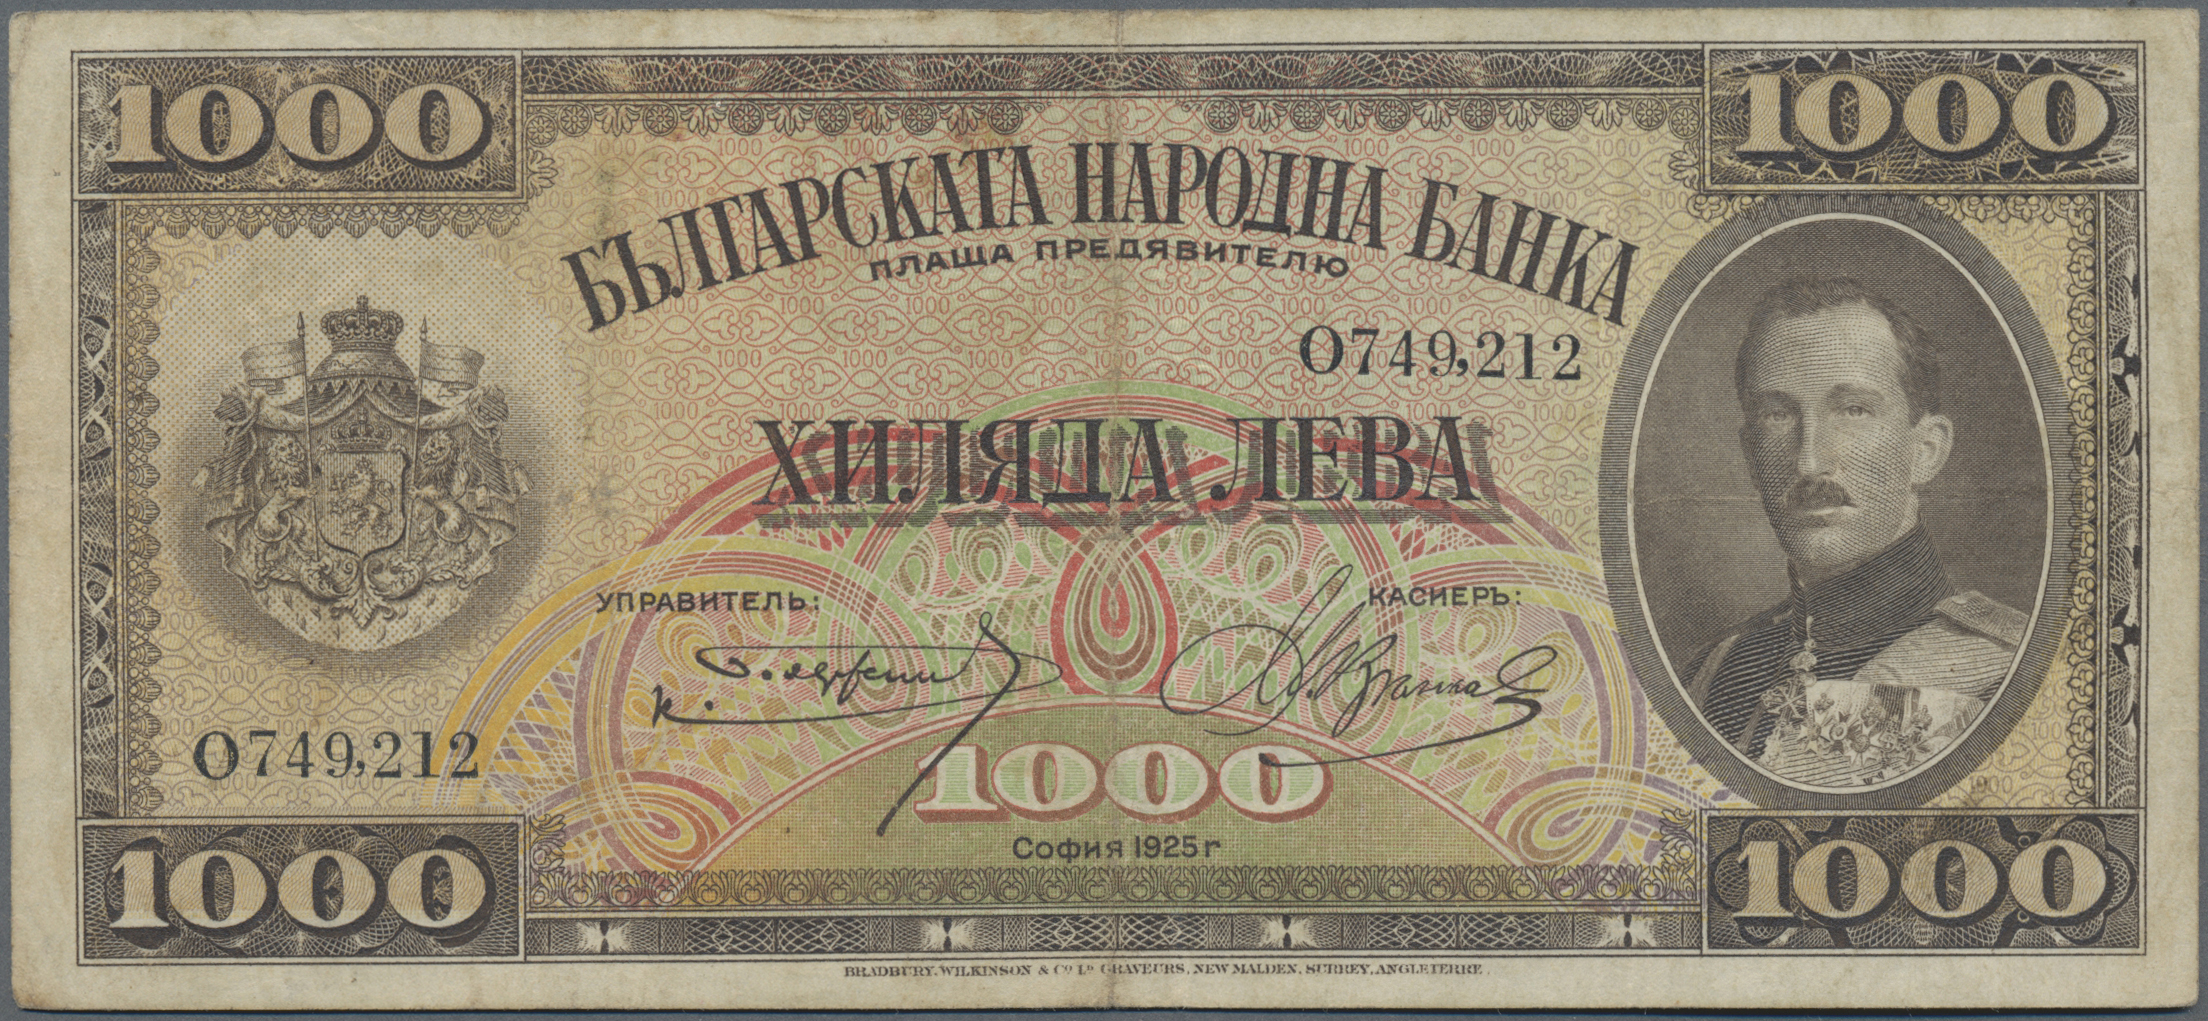 Lot 00228 - Bulgaria / Bulgarien | Banknoten  -  Auktionshaus Christoph Gärtner GmbH & Co. KG Sale #46 The Banknotes Worldwide section of the 46th Christoph Gärtner Auction